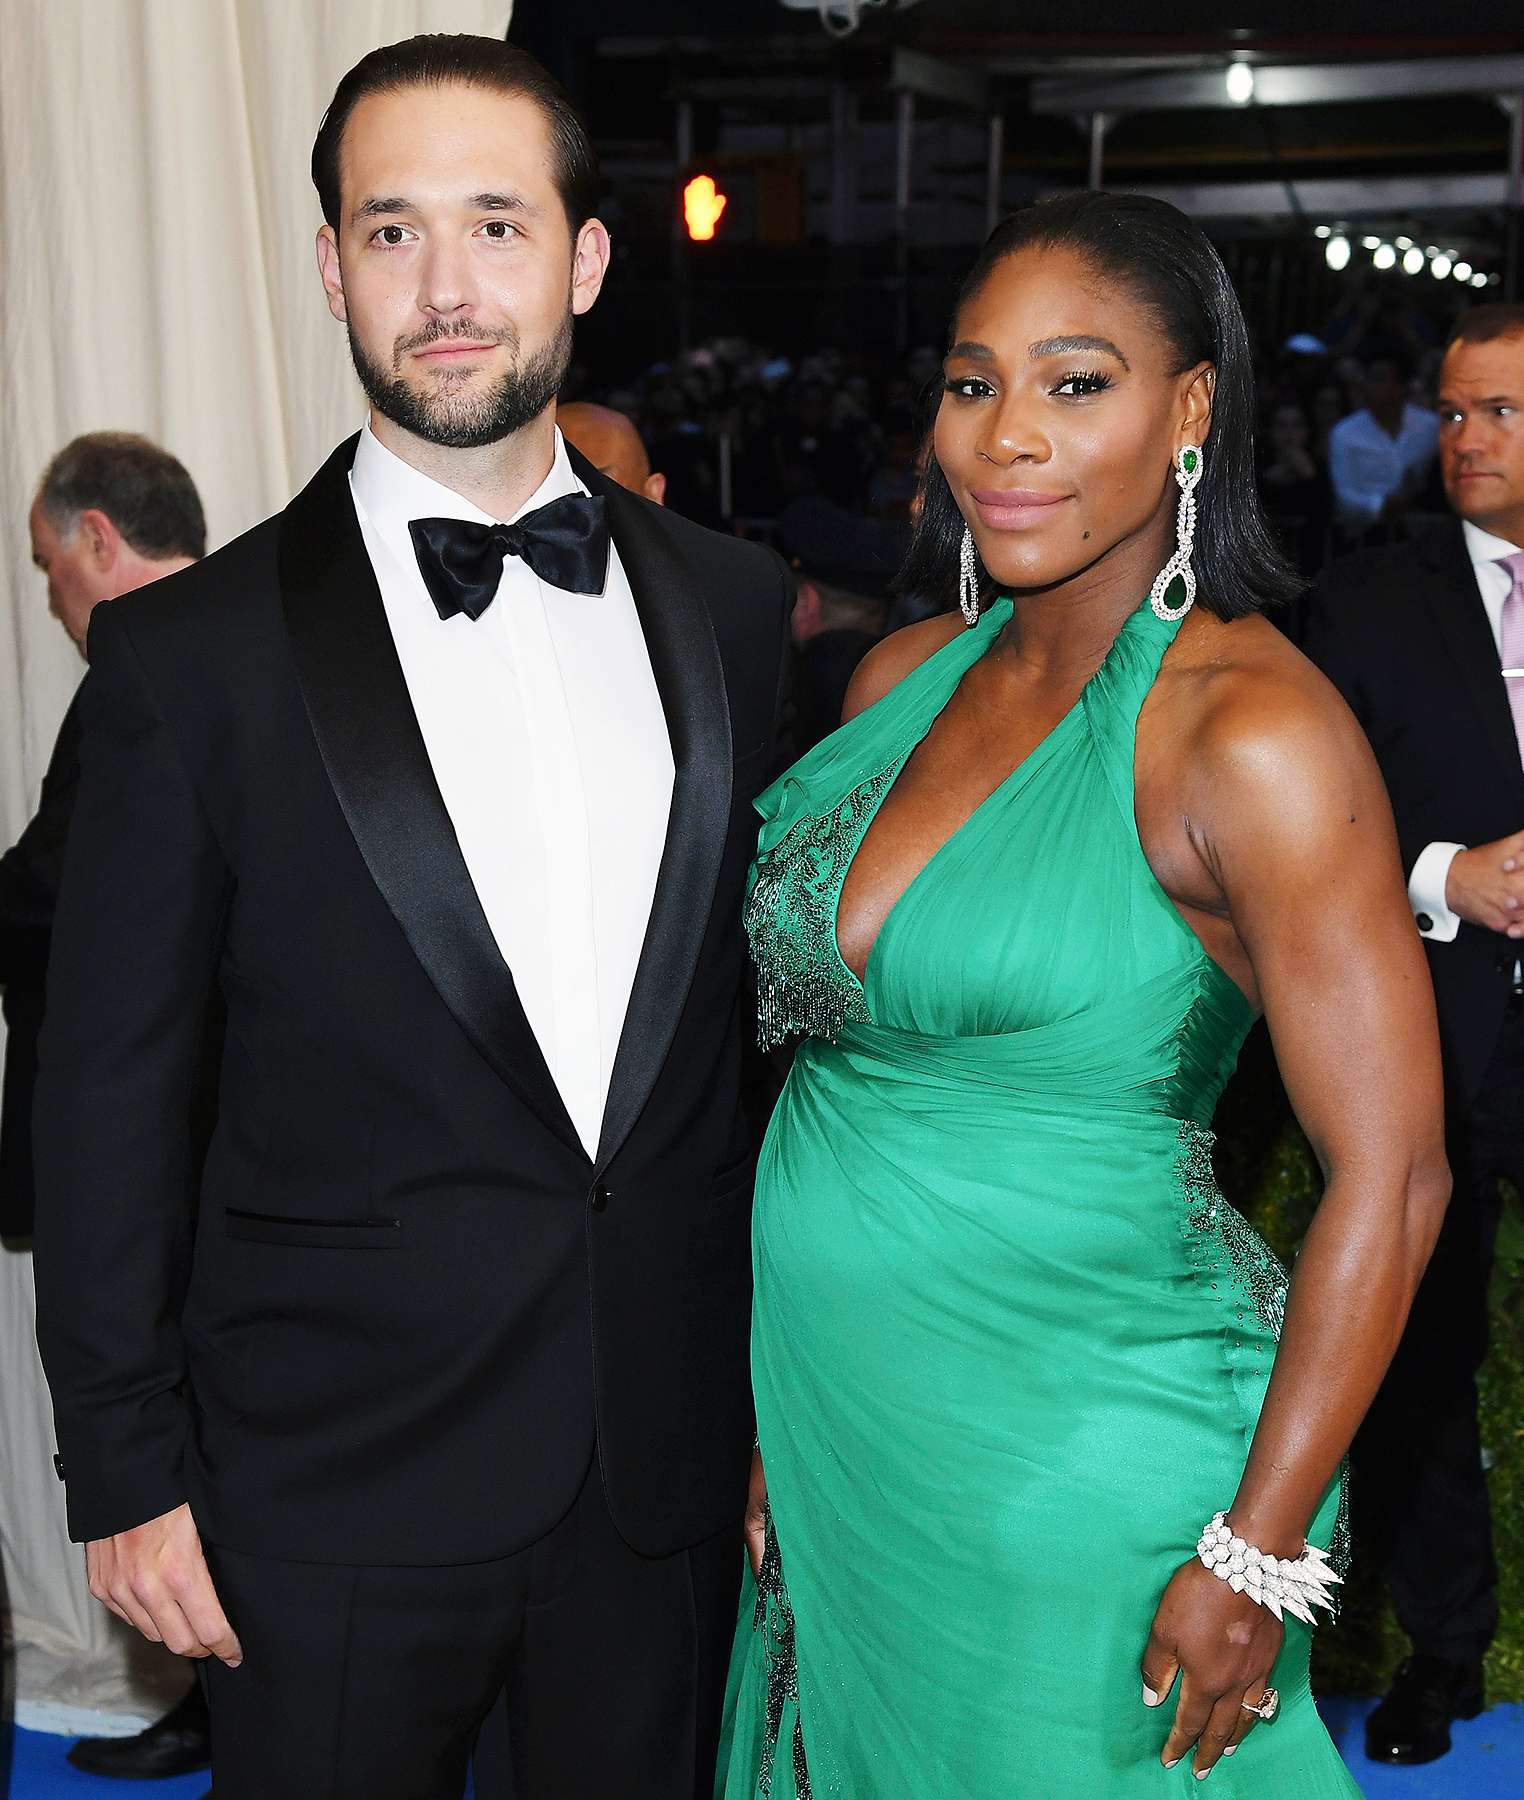 Serena Williams was brought to tears by her husband's romantic billboard surprise